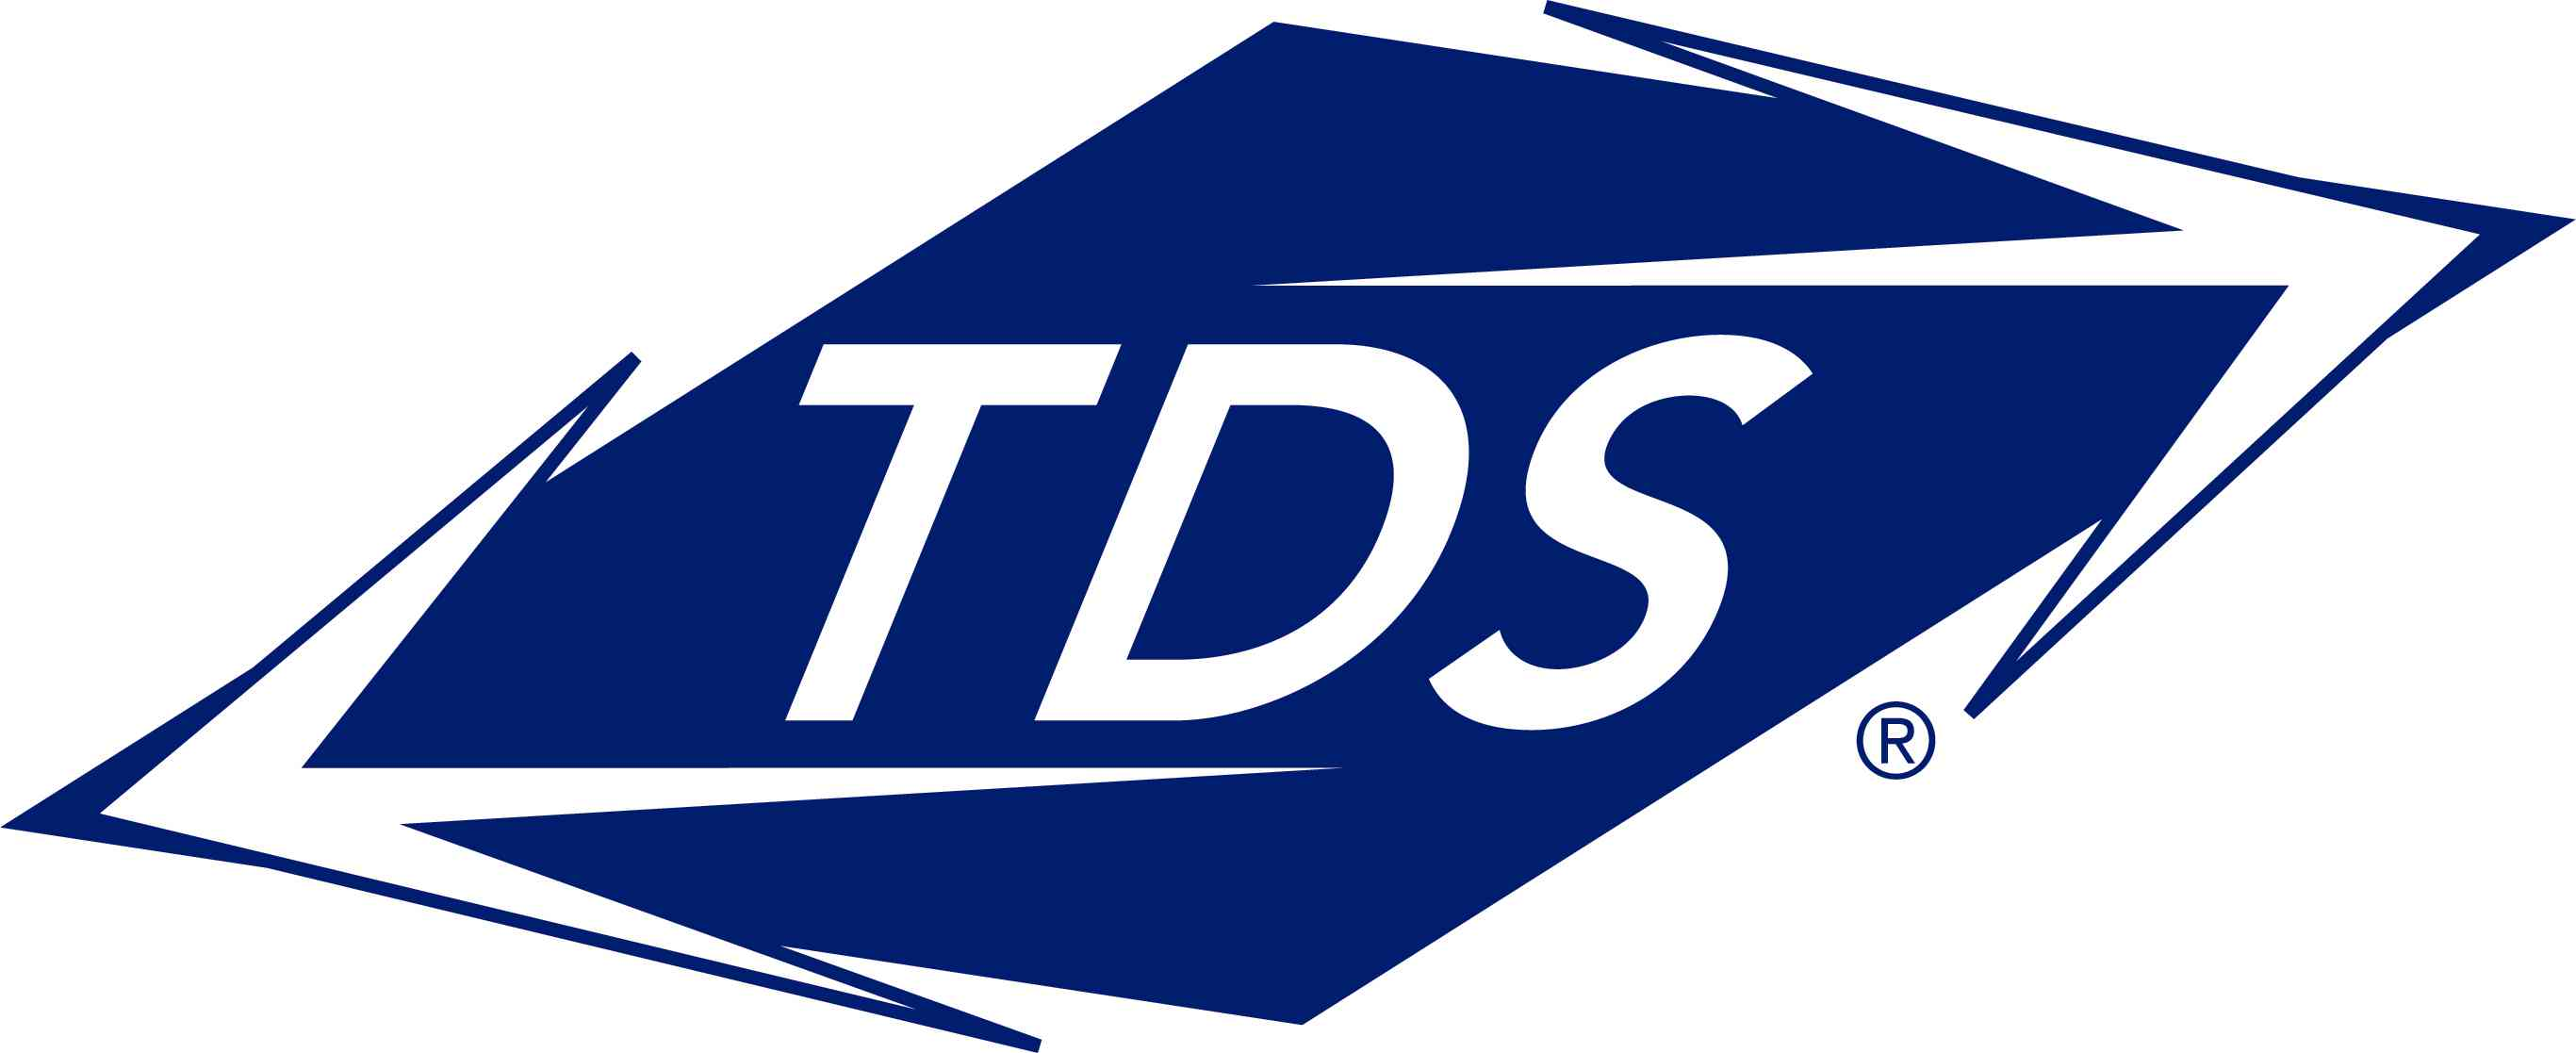 Tds Telecom Launches 1gig High Speed Internet Service In